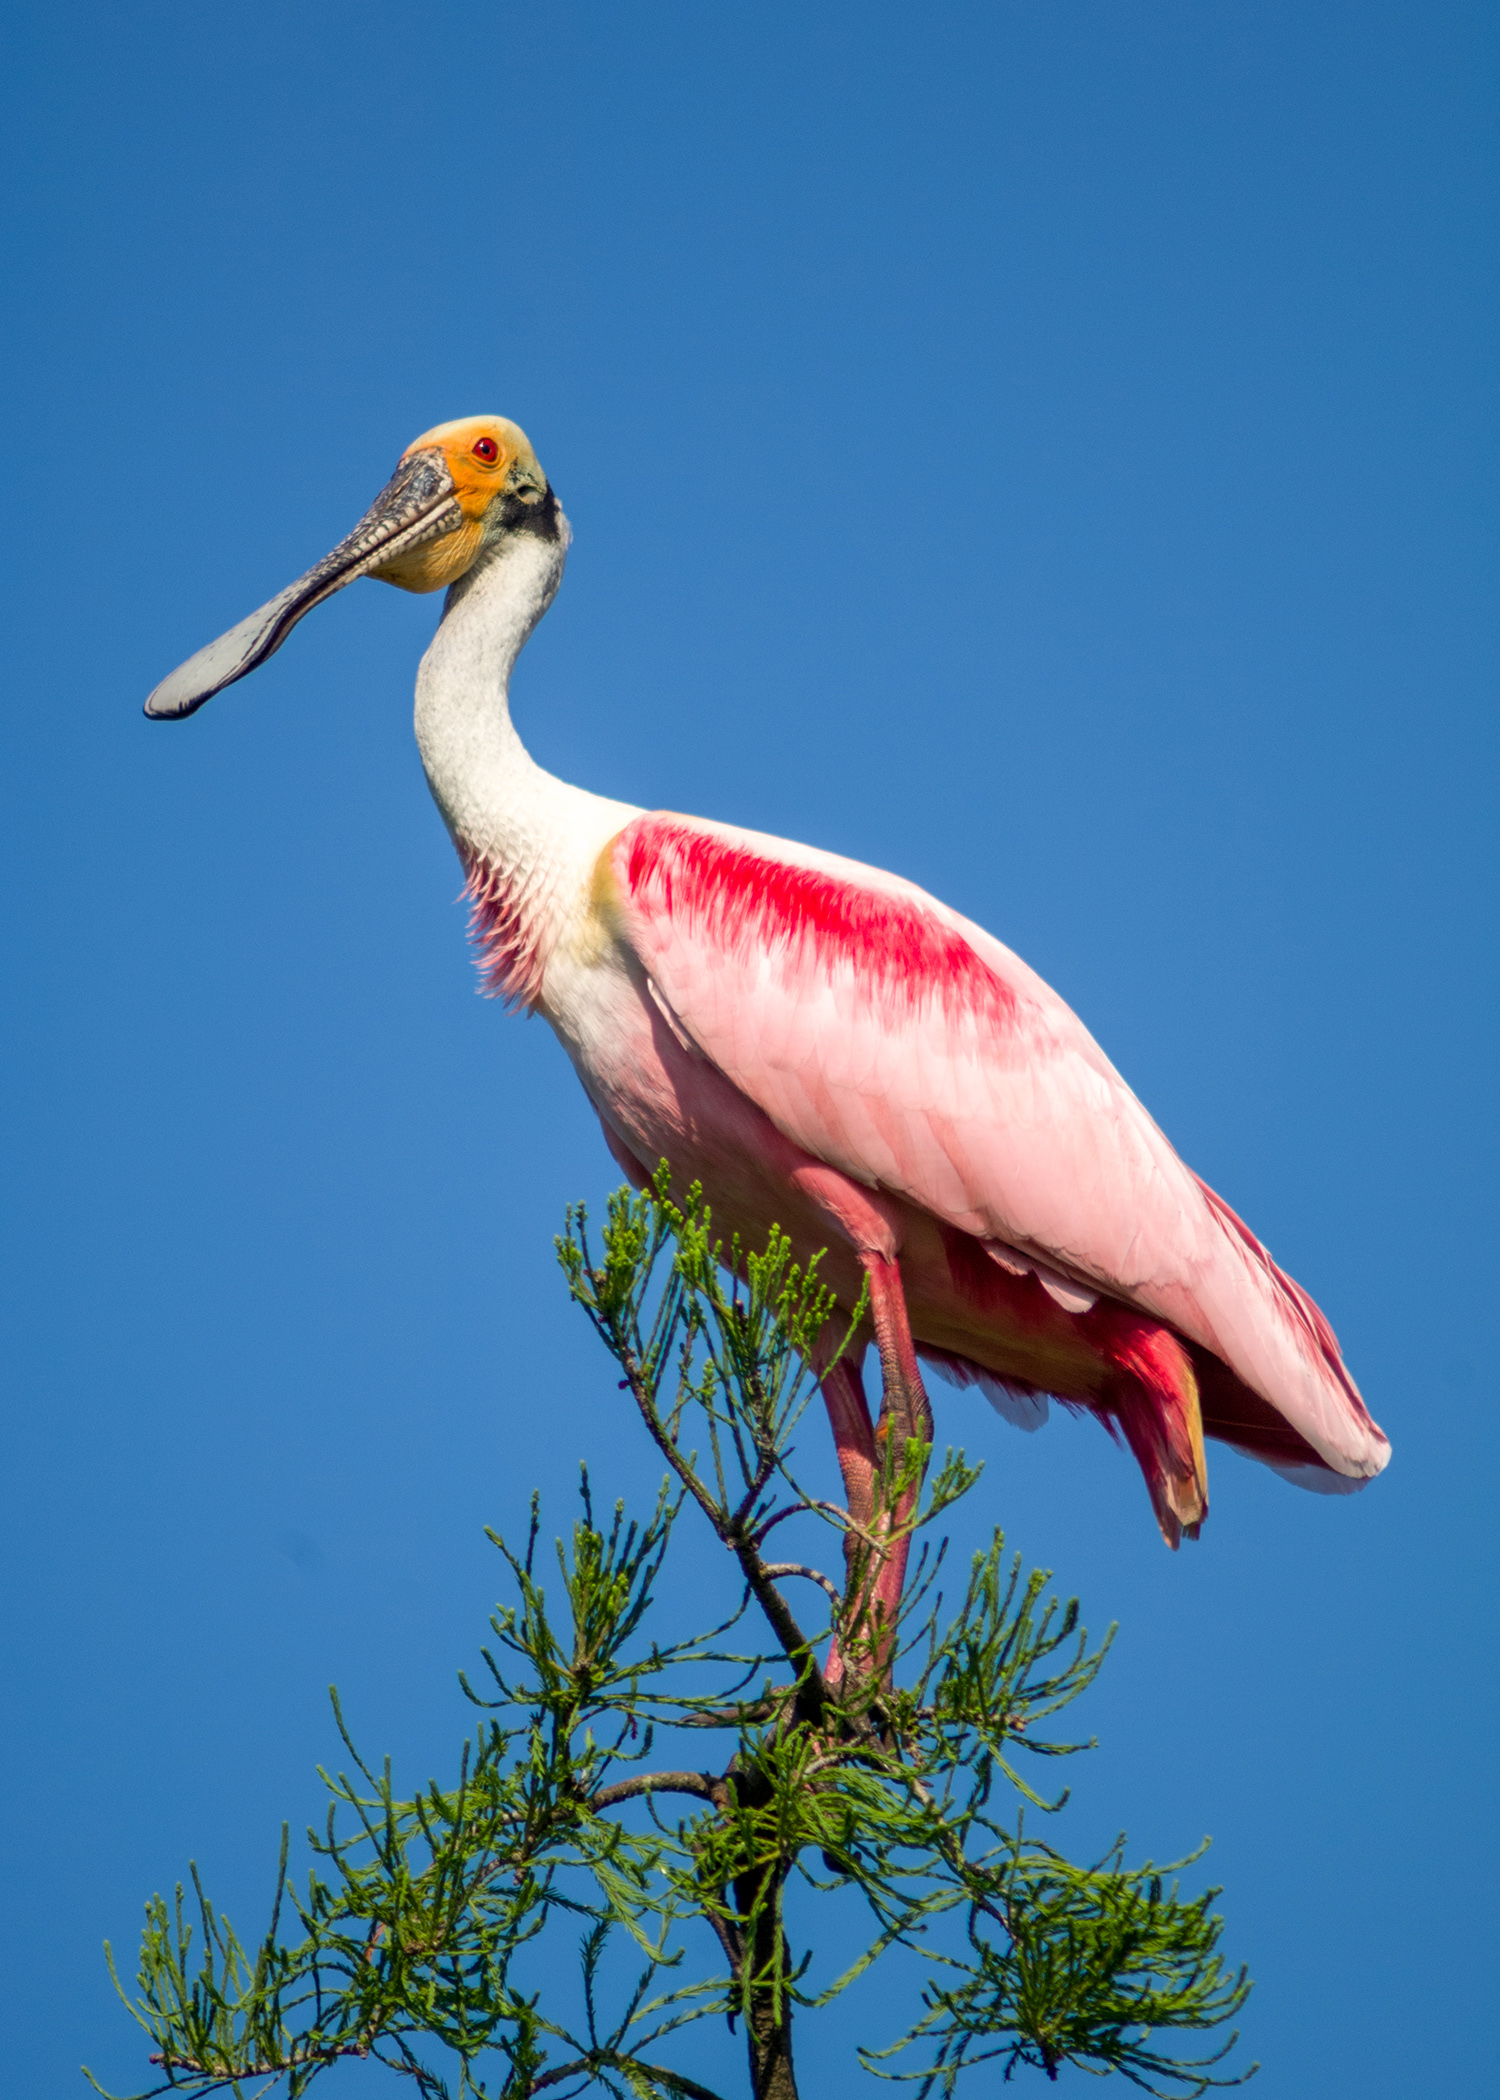 Roseate spoonbills burst with colors whether they are flying or roosting in a tree. (Photo by Bill Stripling).